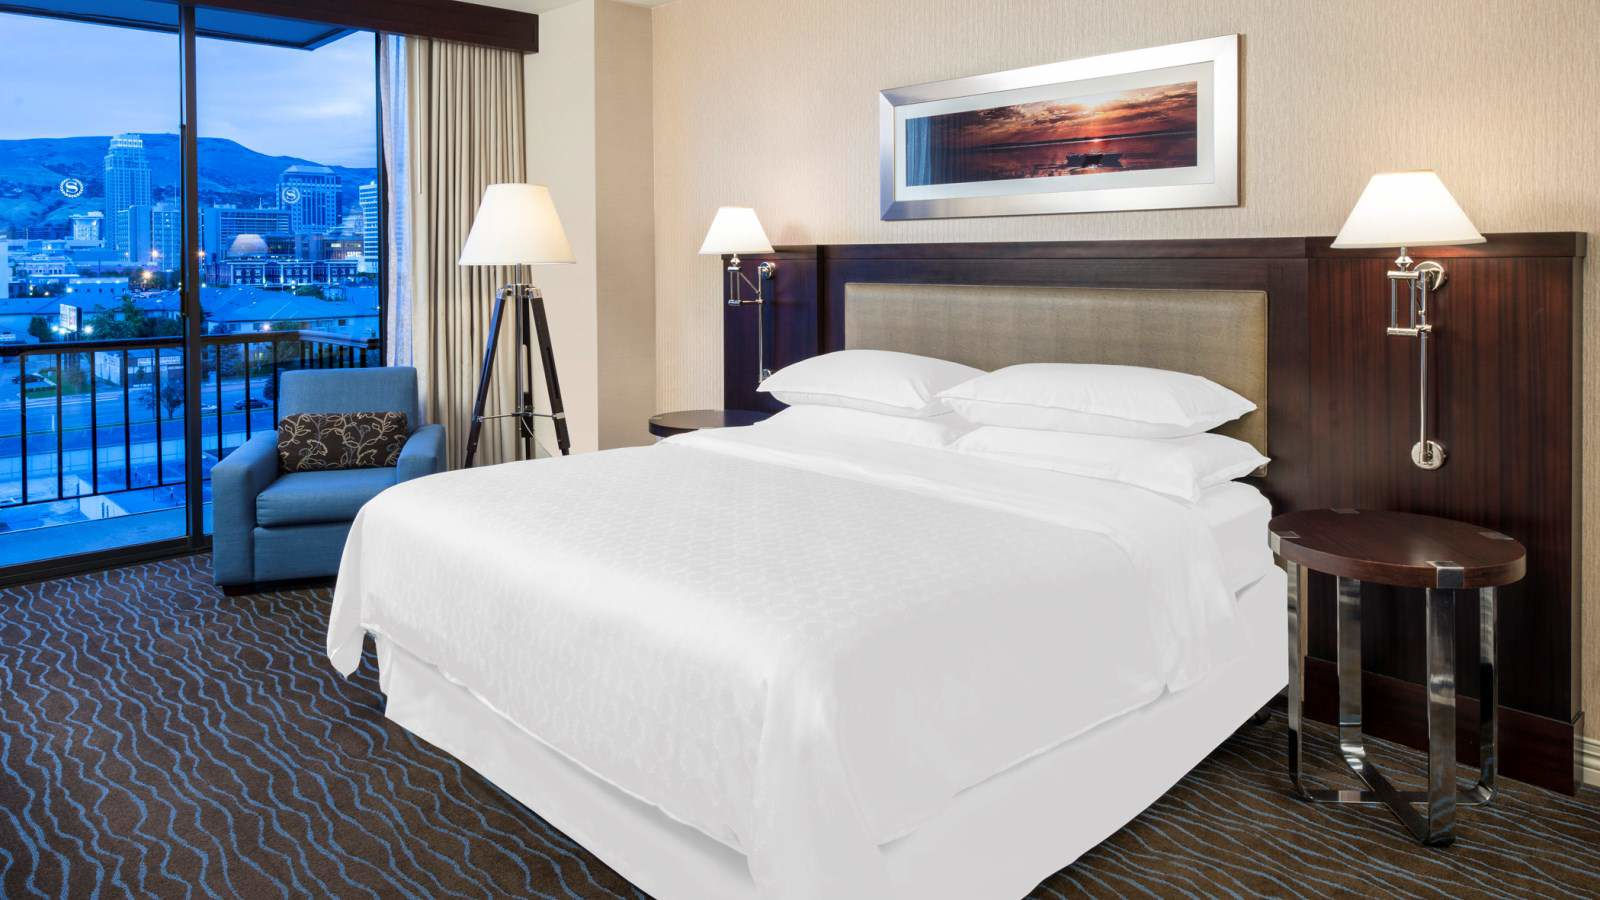 Sheraton Salt Lake City Hotel - Suite